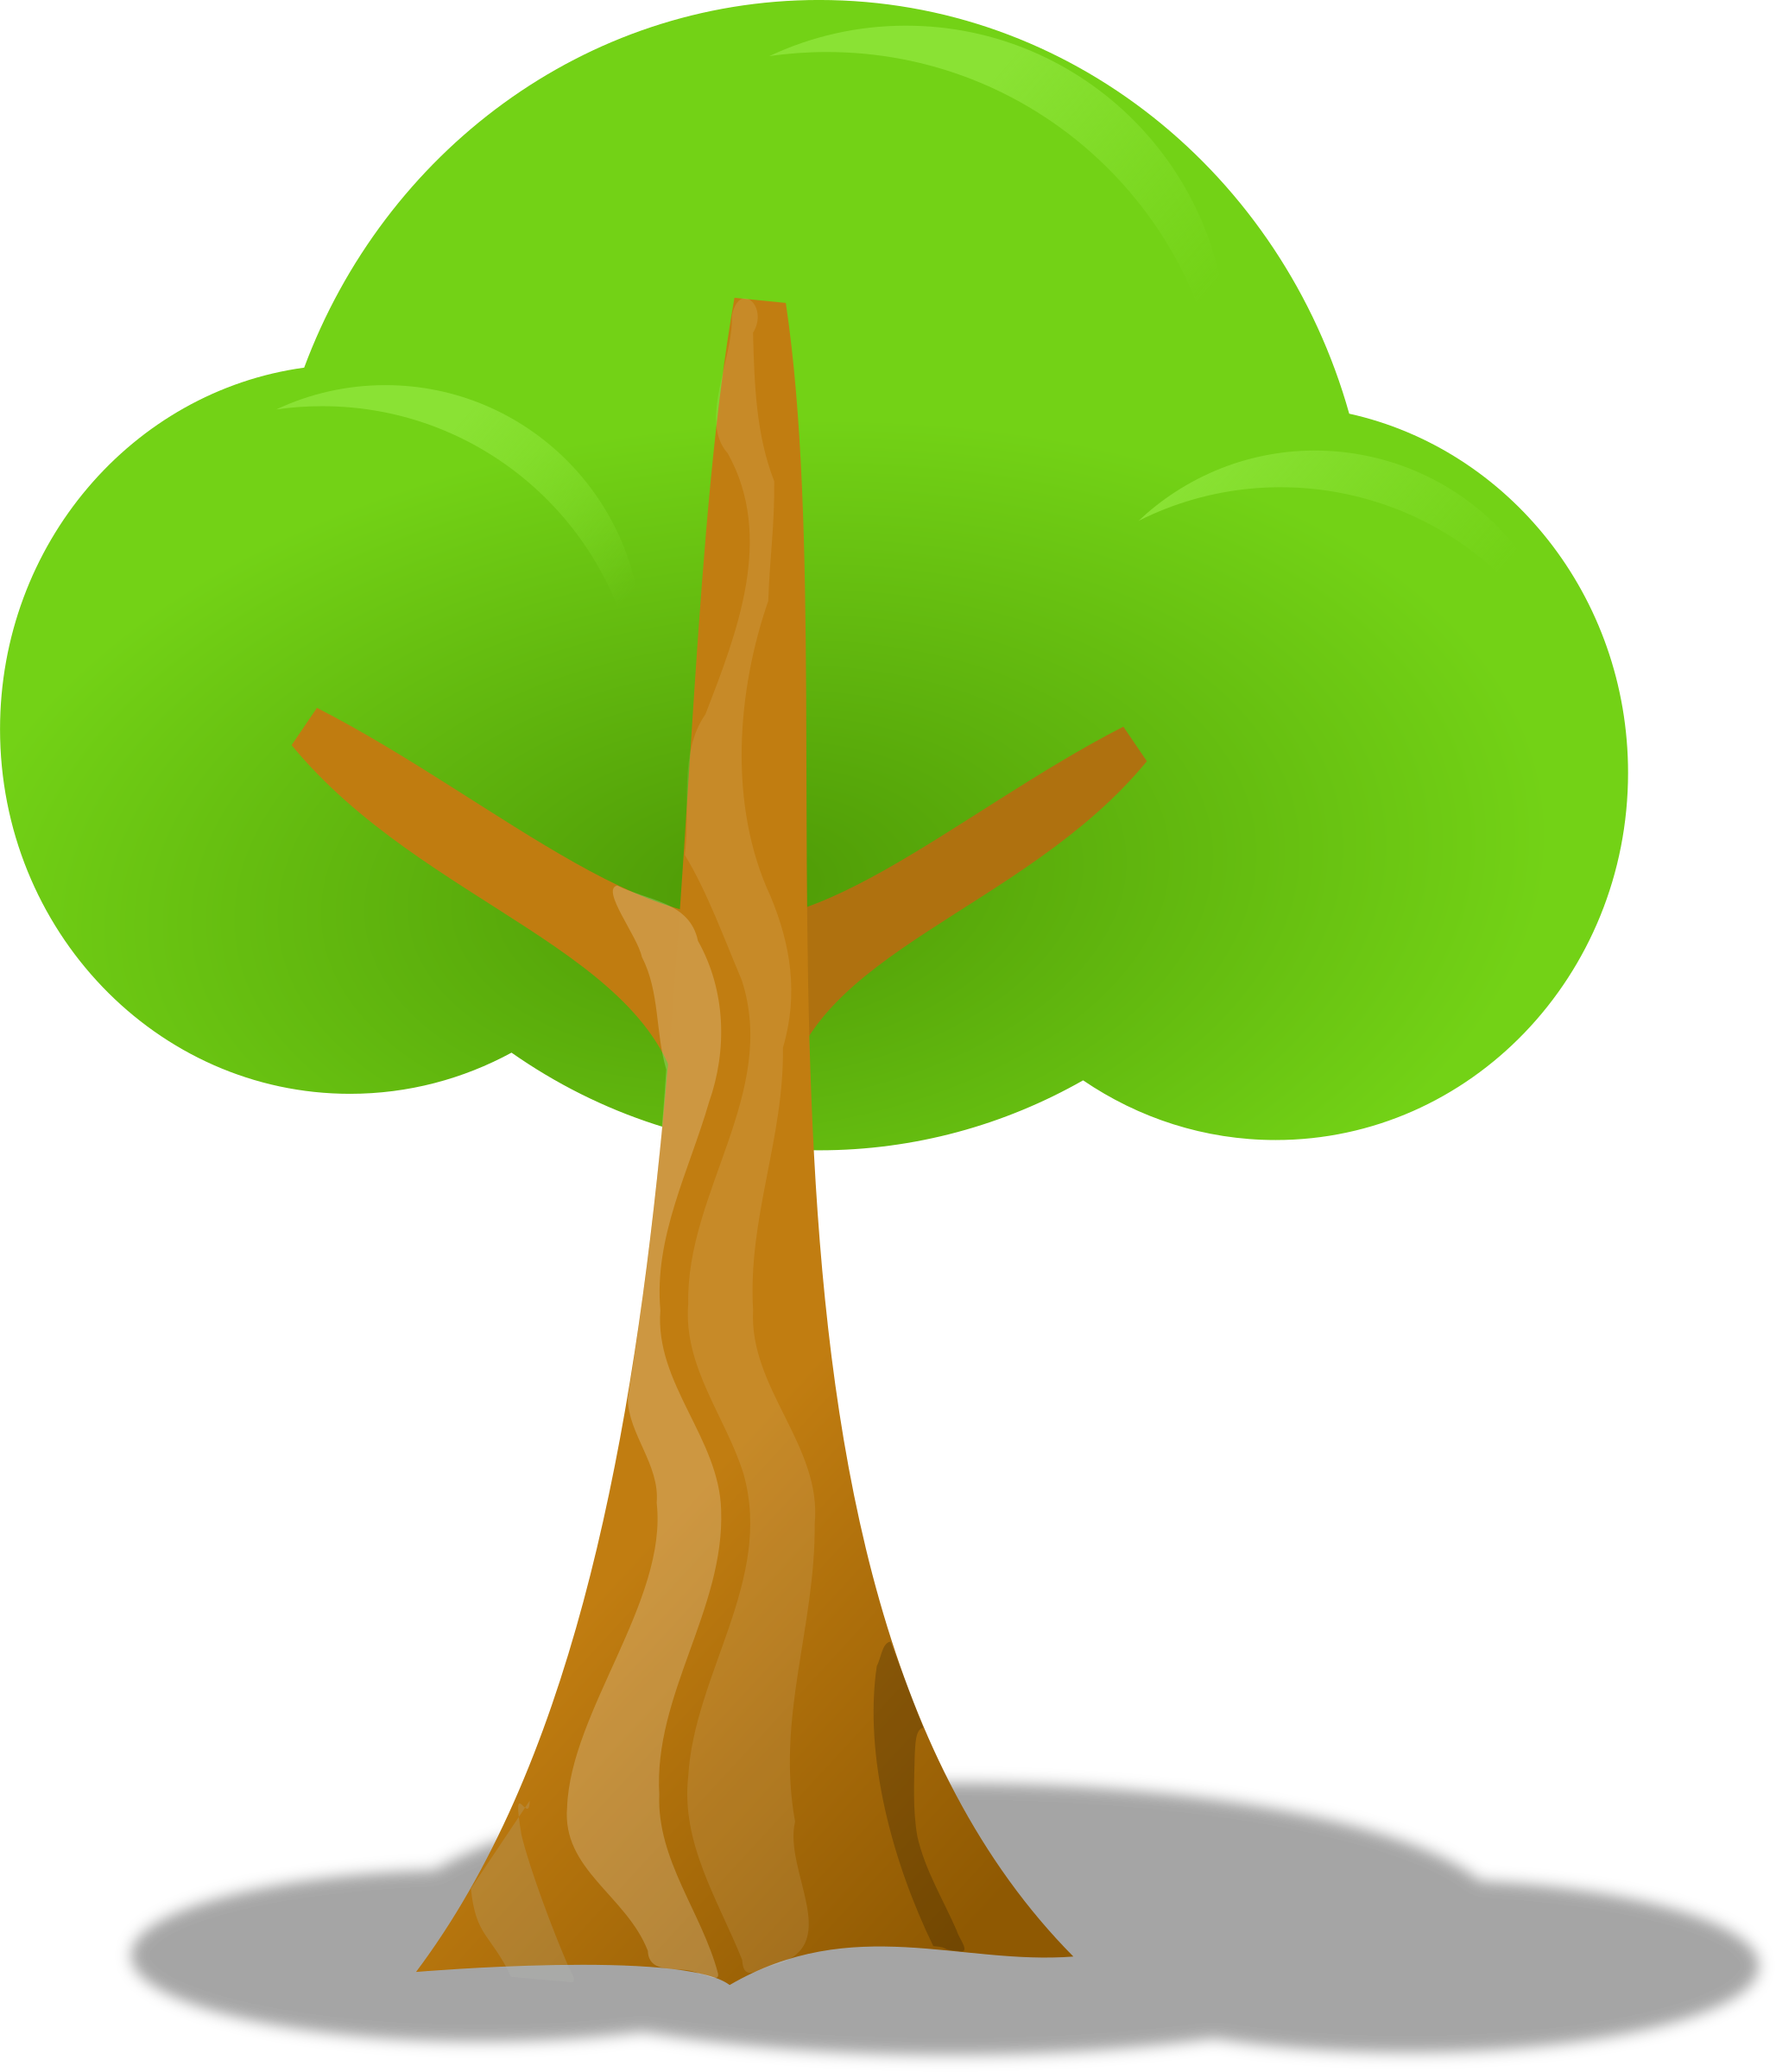 Picture clipart tree. Simple big image png